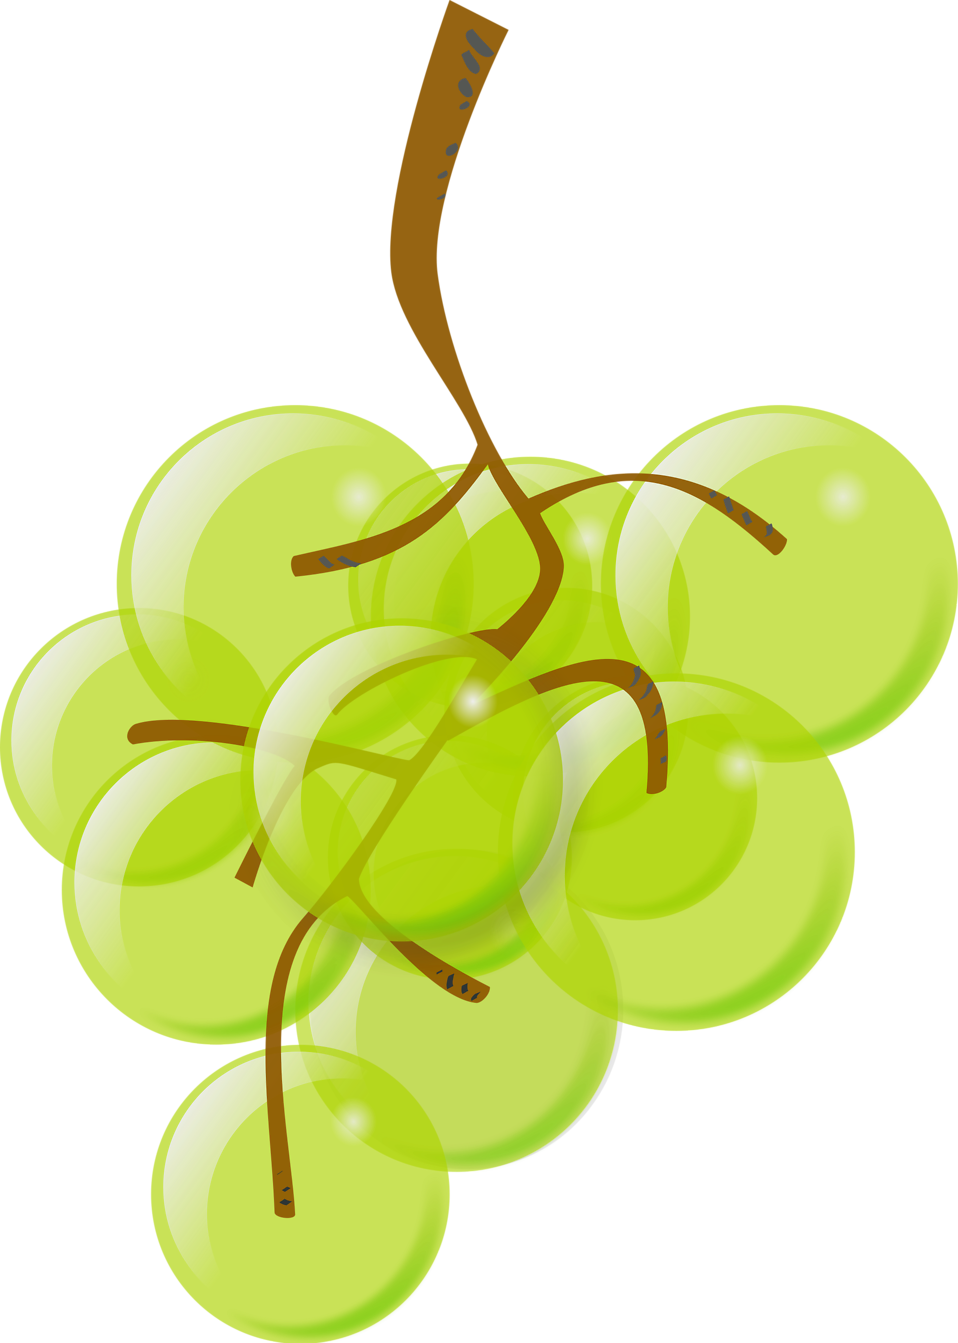 Transparent grapes illustration. Free stock photo of